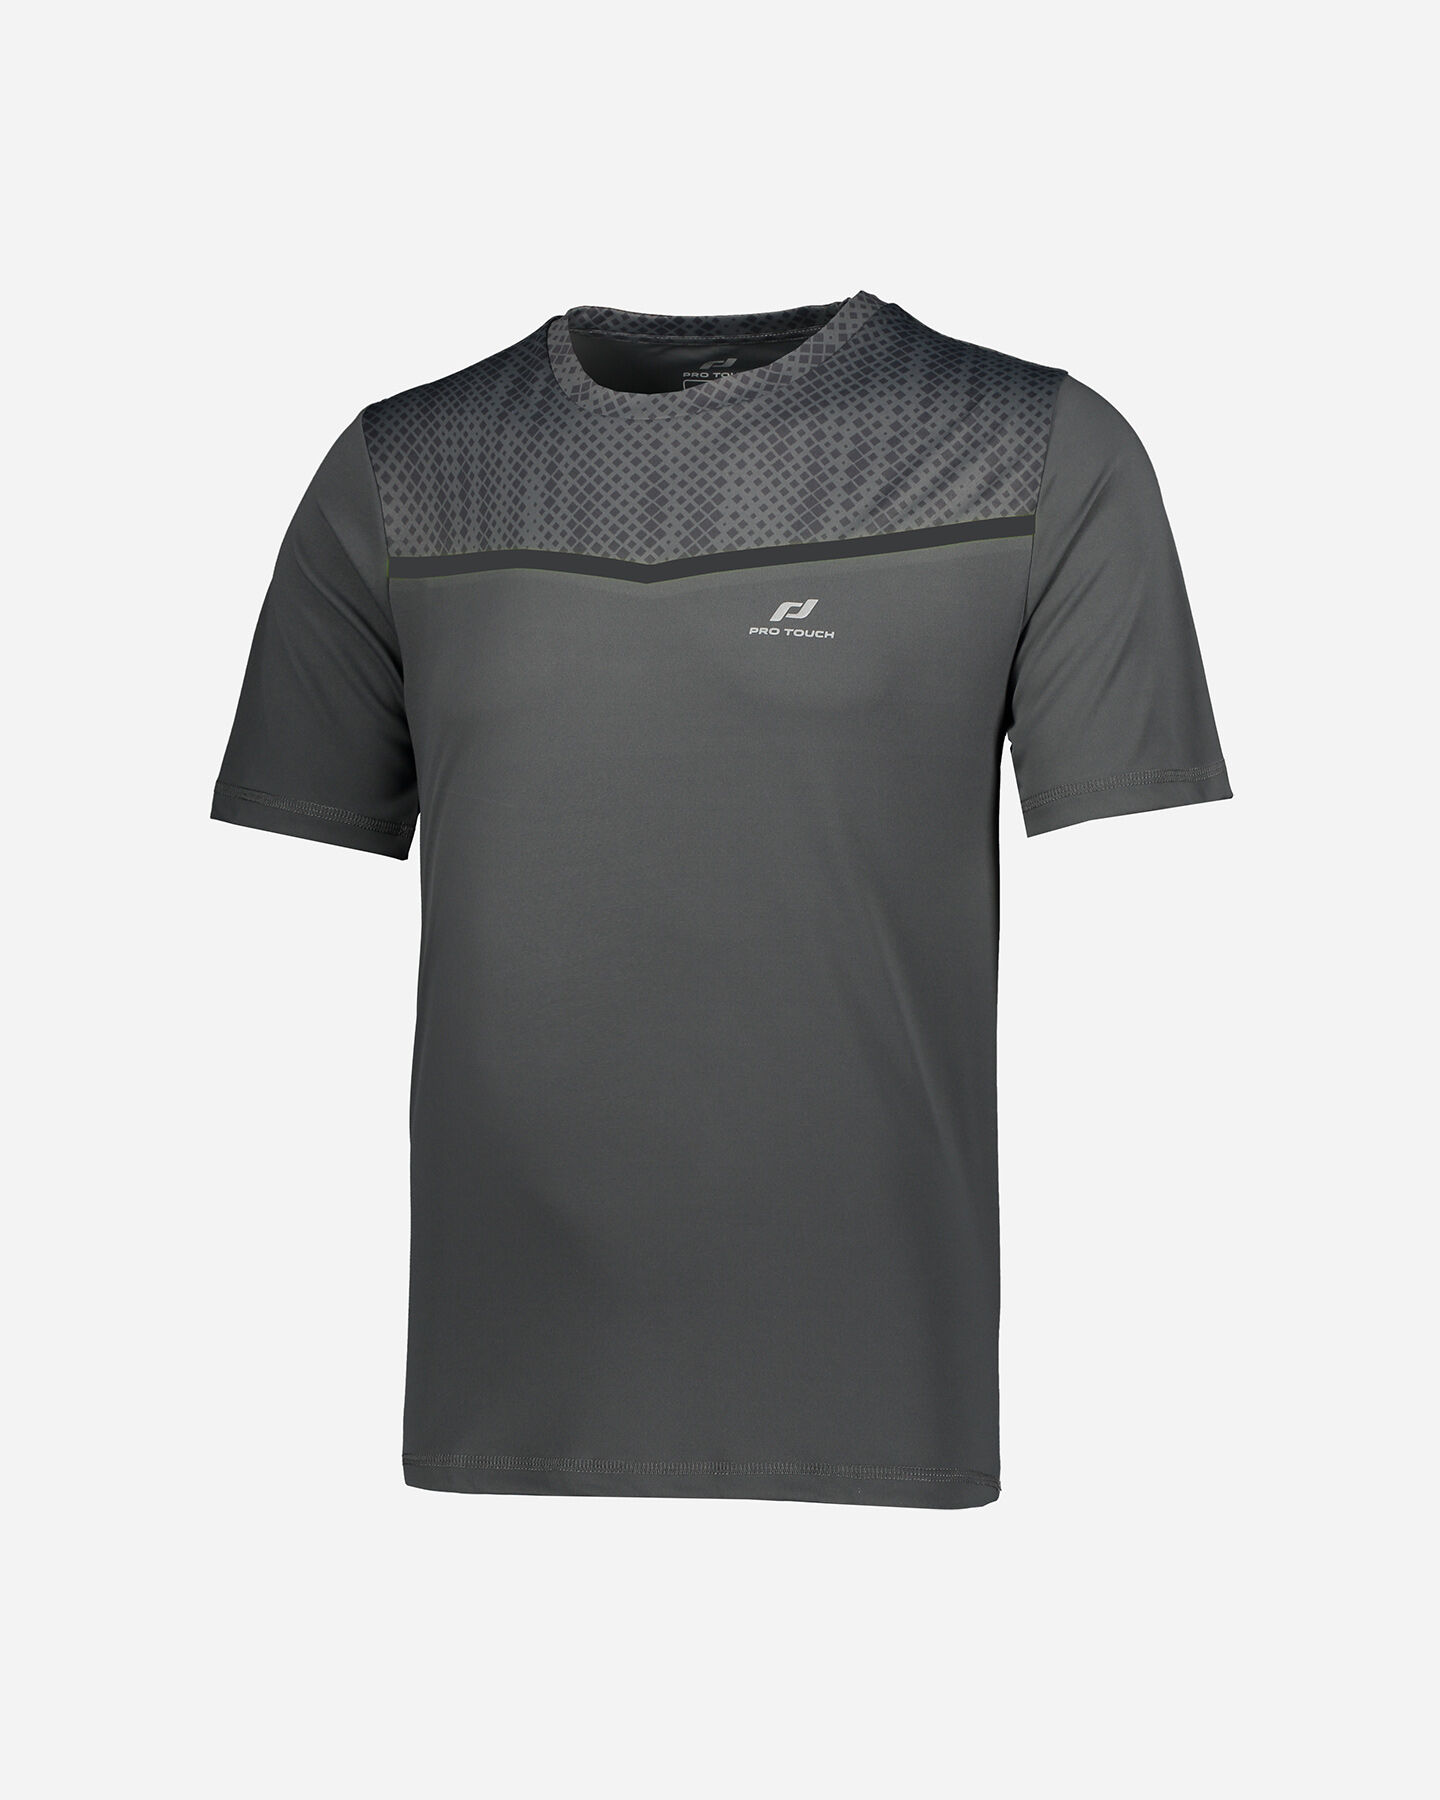 T-Shirt running PRO TOUCH AKSEL M S5157695 scatto 0